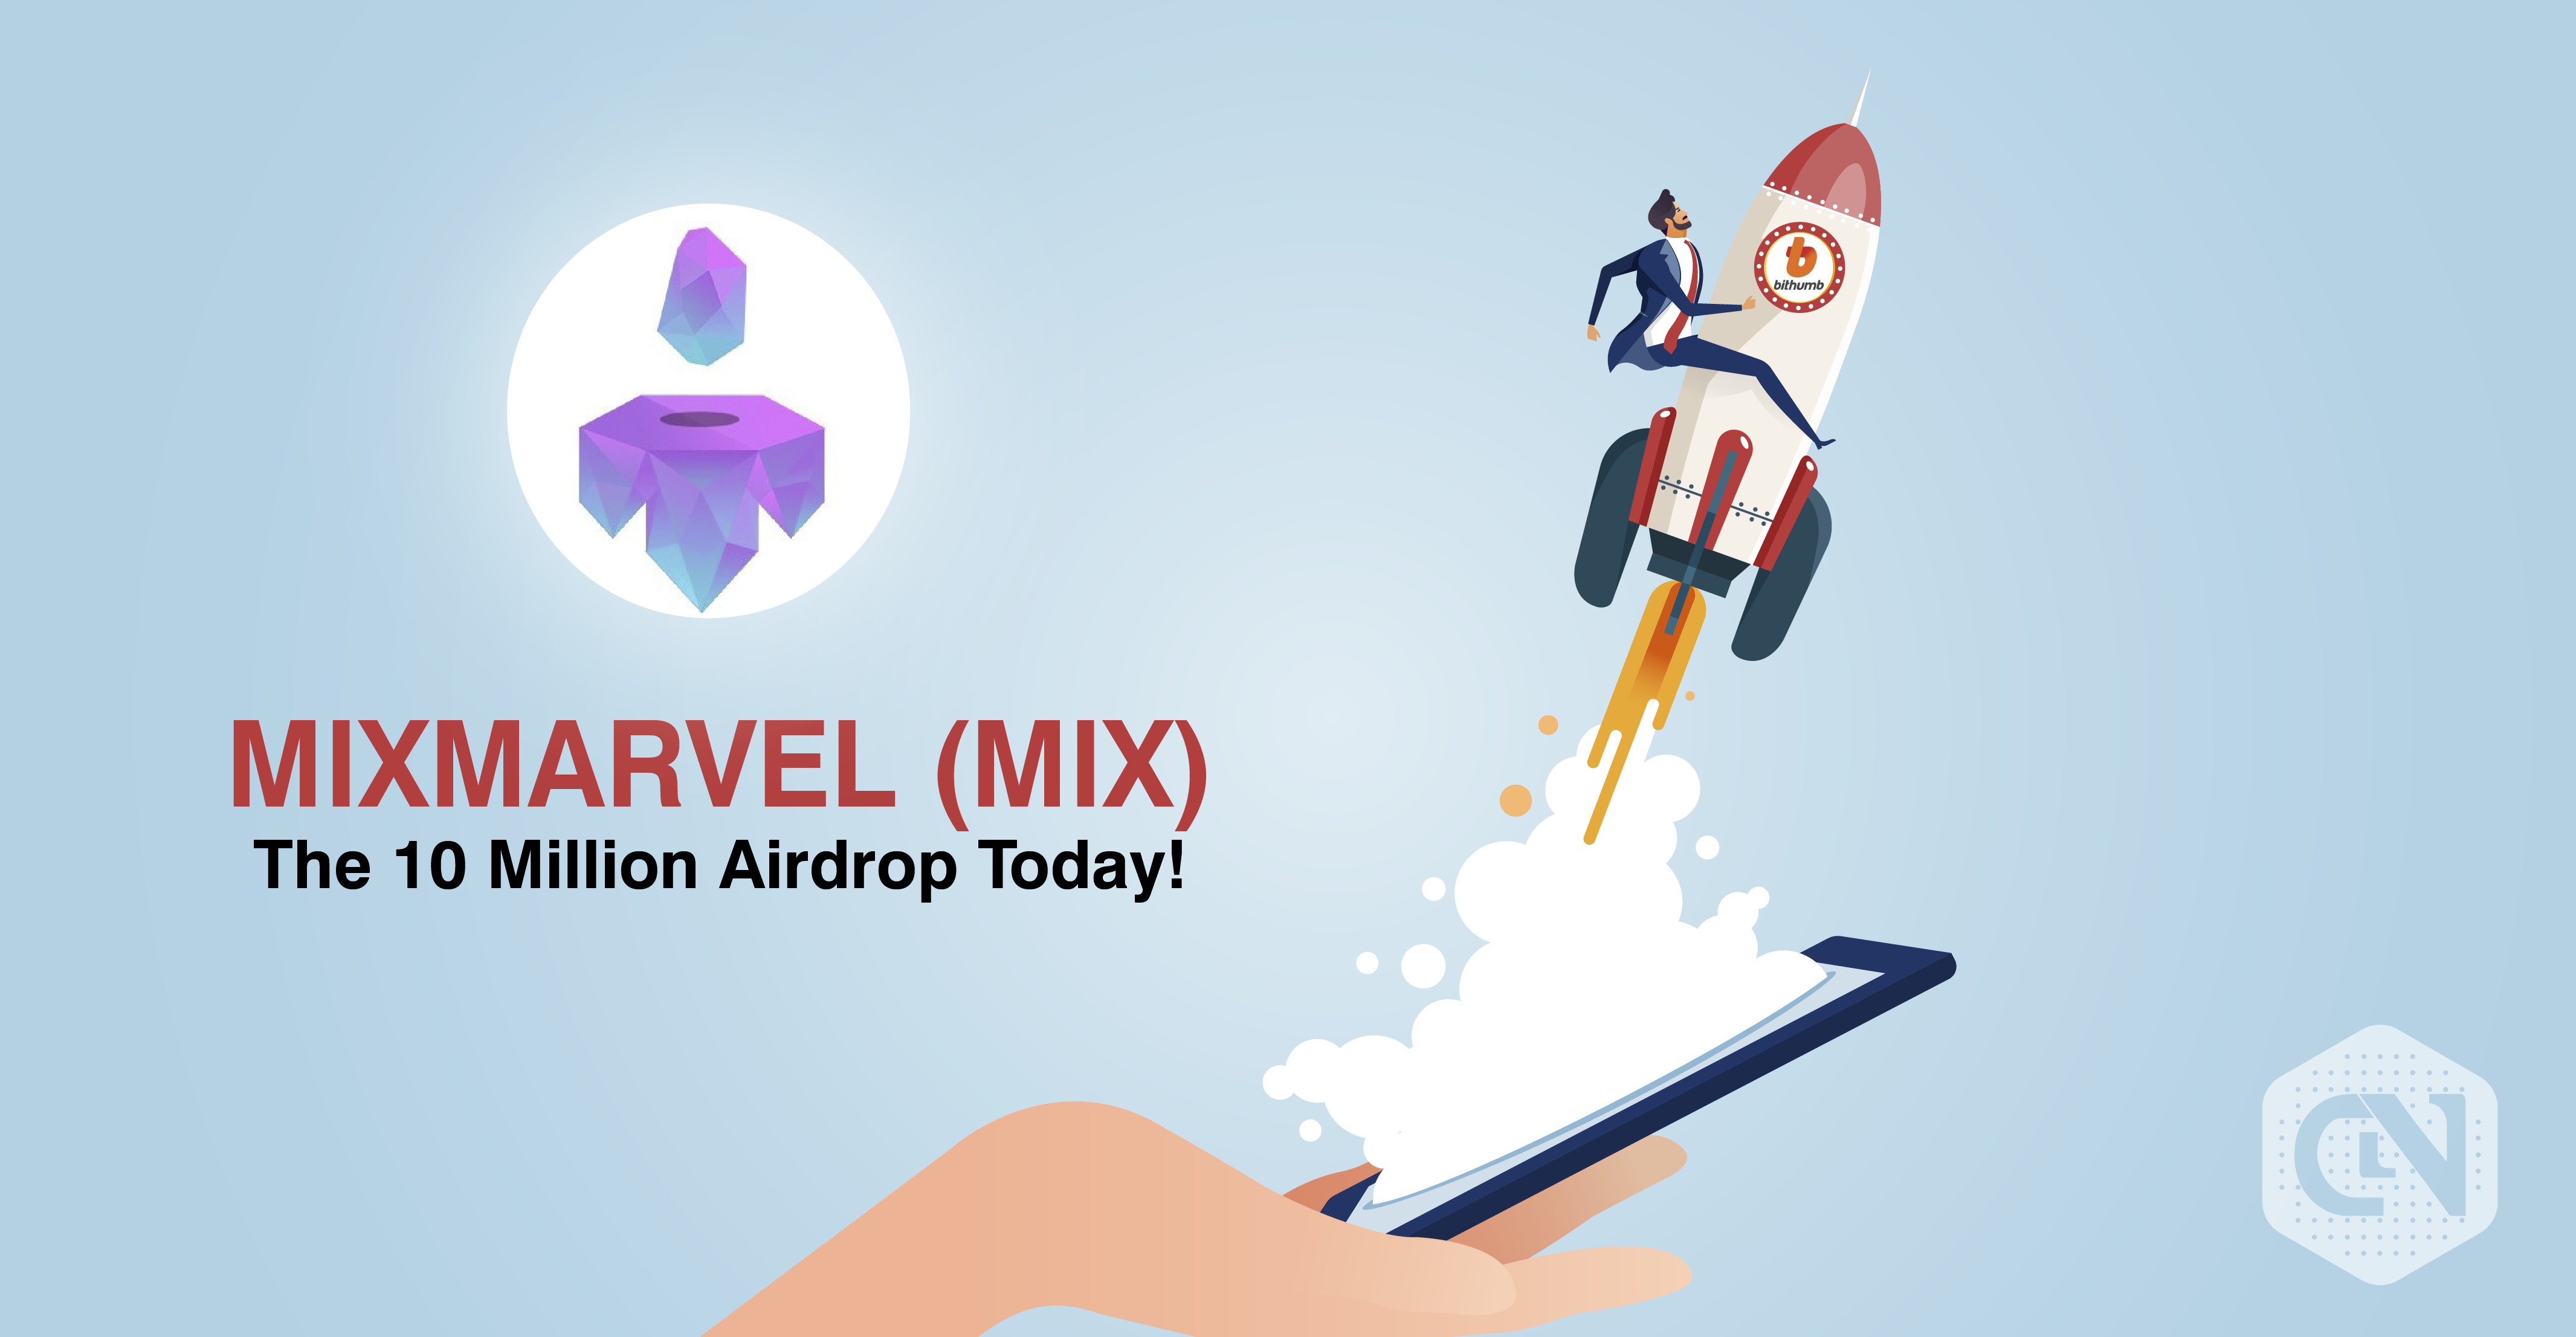 Bithumb adds MIXMARVEL; initiates 10 Million Airdrop.